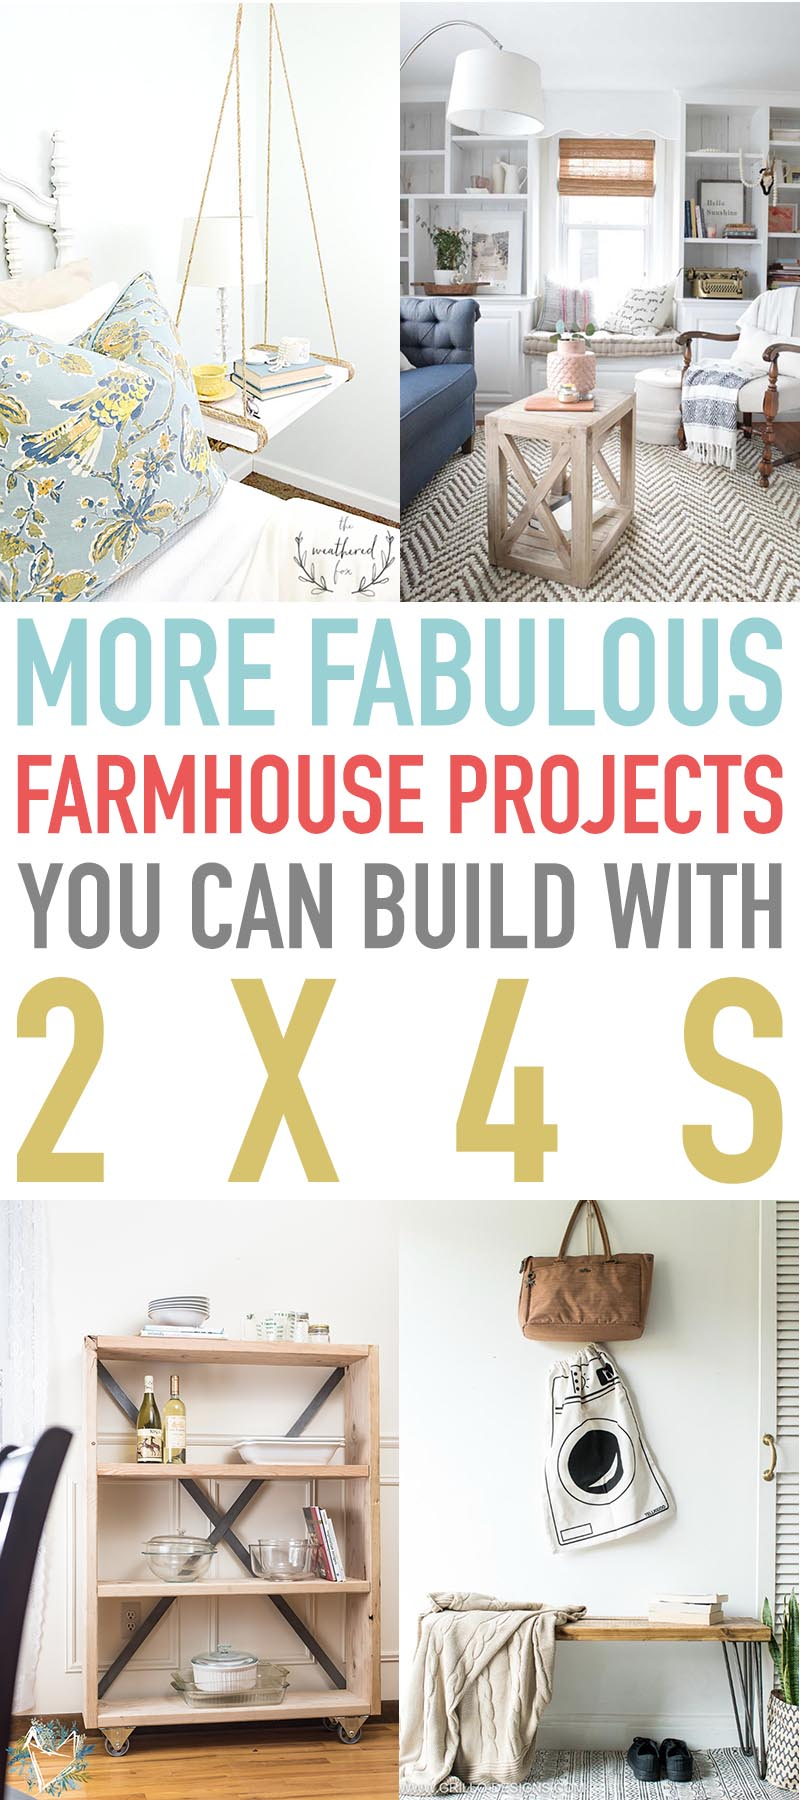 These Fabulous Farmhouse Projects You Can Build With 2X4's will keep you busy for a very long time! Quick, easy and not many supplies which is always a good thing!